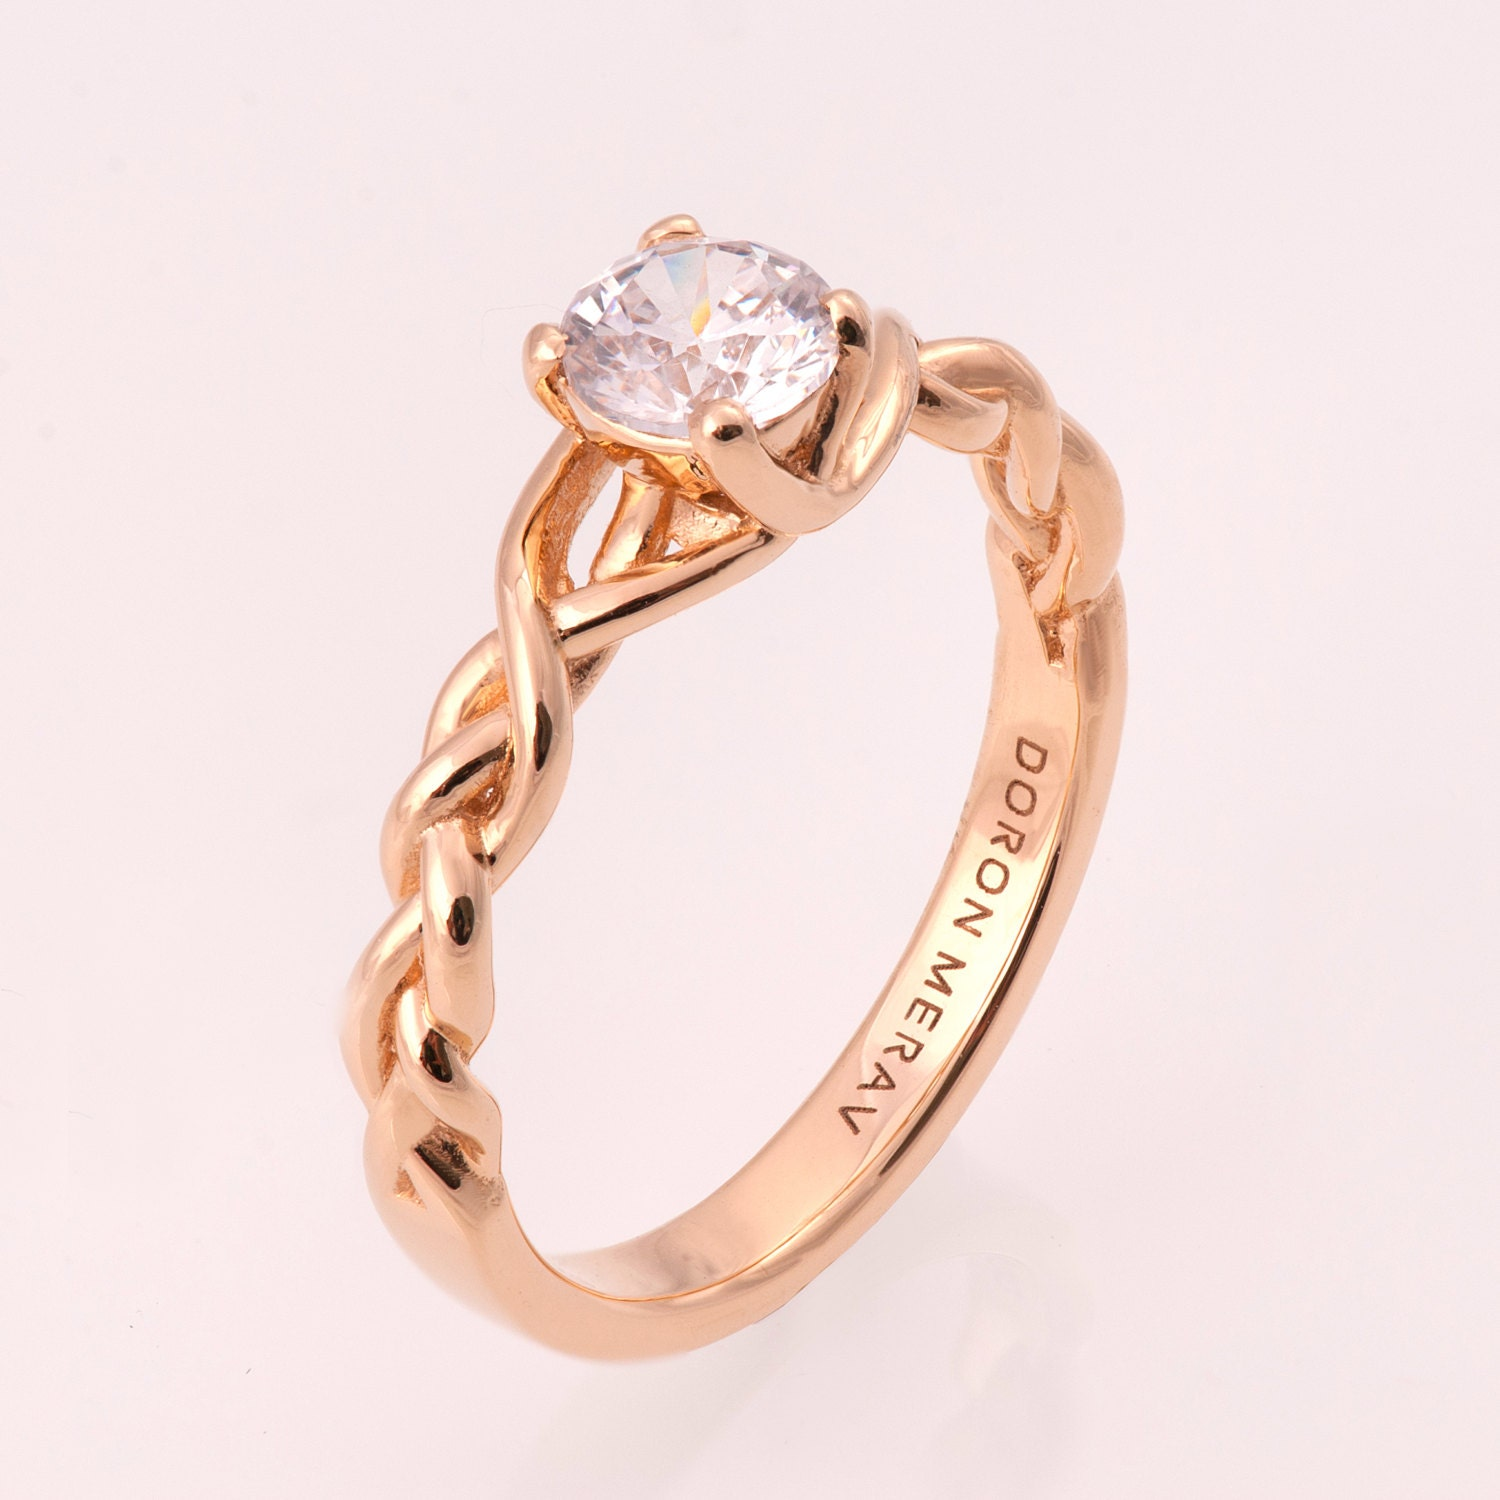 Braided Engagement Ring No.2 14K Rose Gold and Diamond